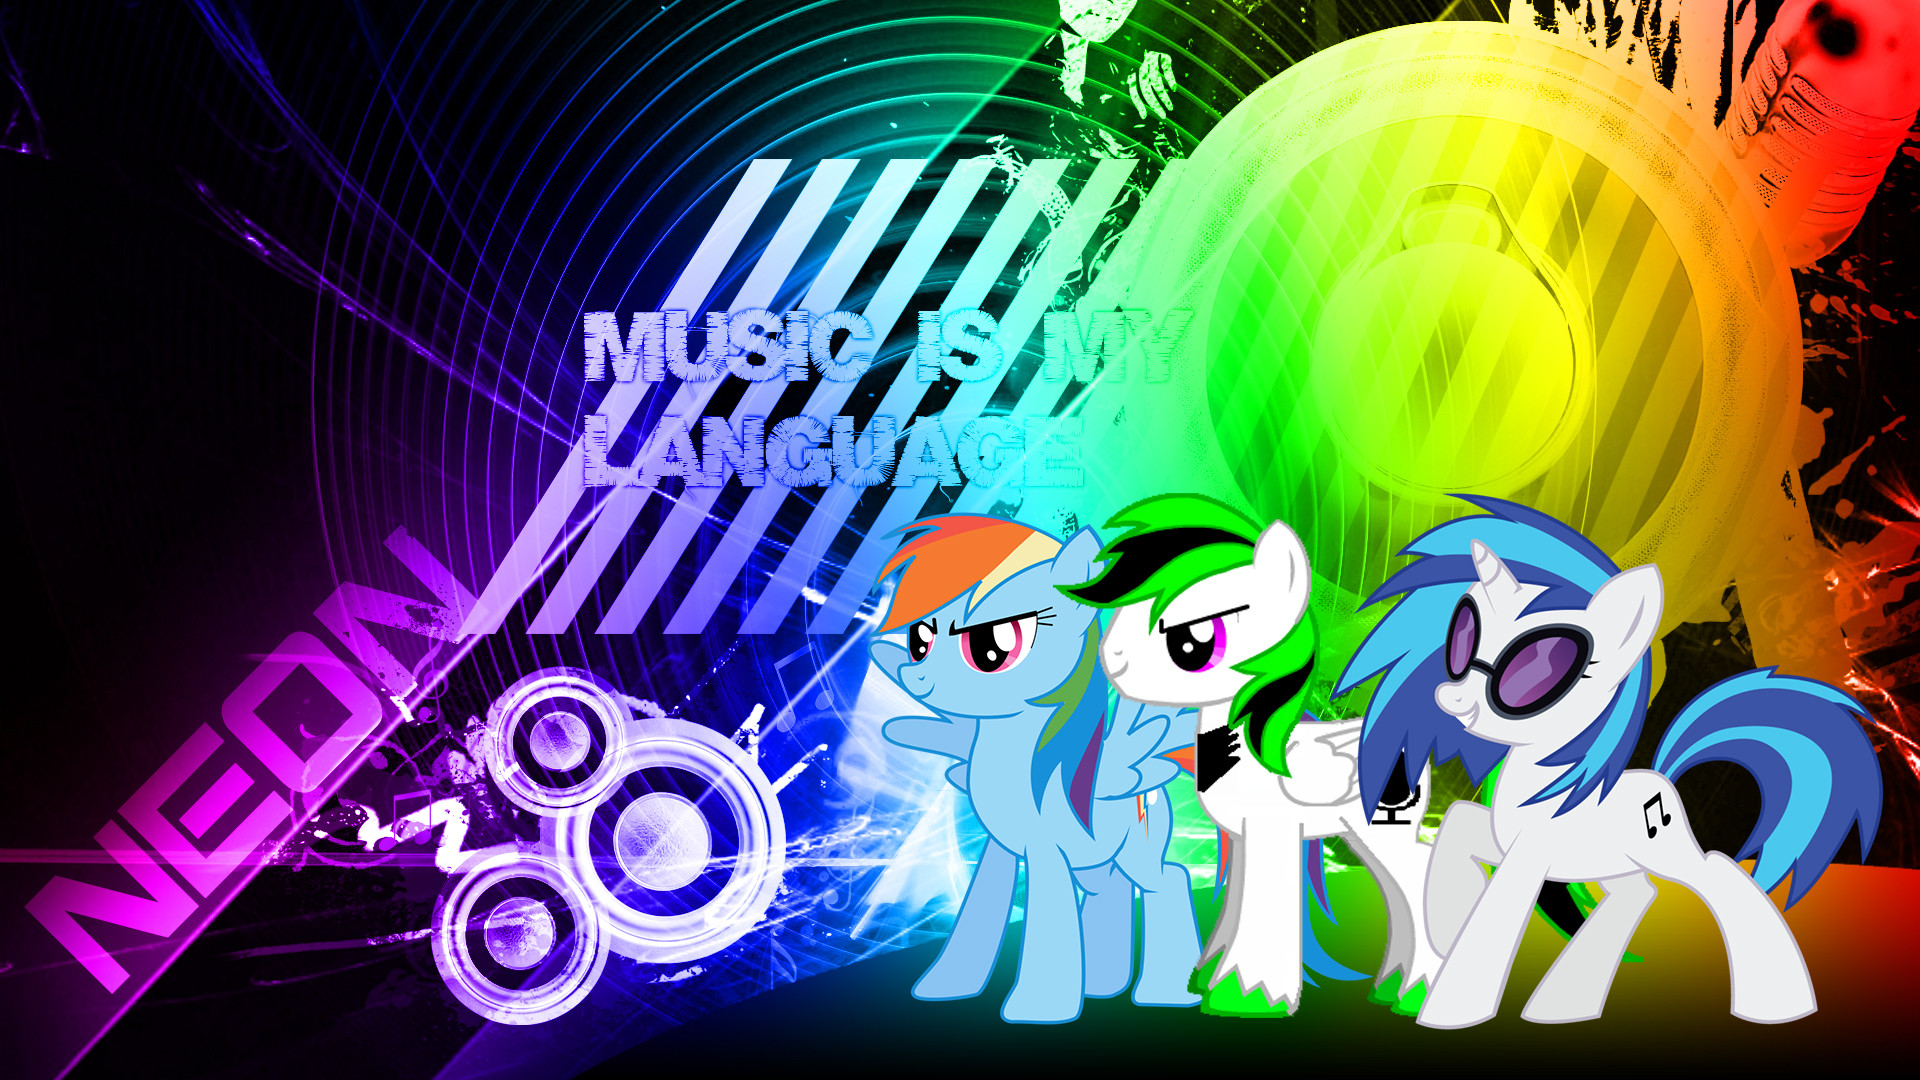 1920x1080 mlp music wallpaper neon by neonthepegasus fan art wallpaper other Neon  Music Note Wallpaper